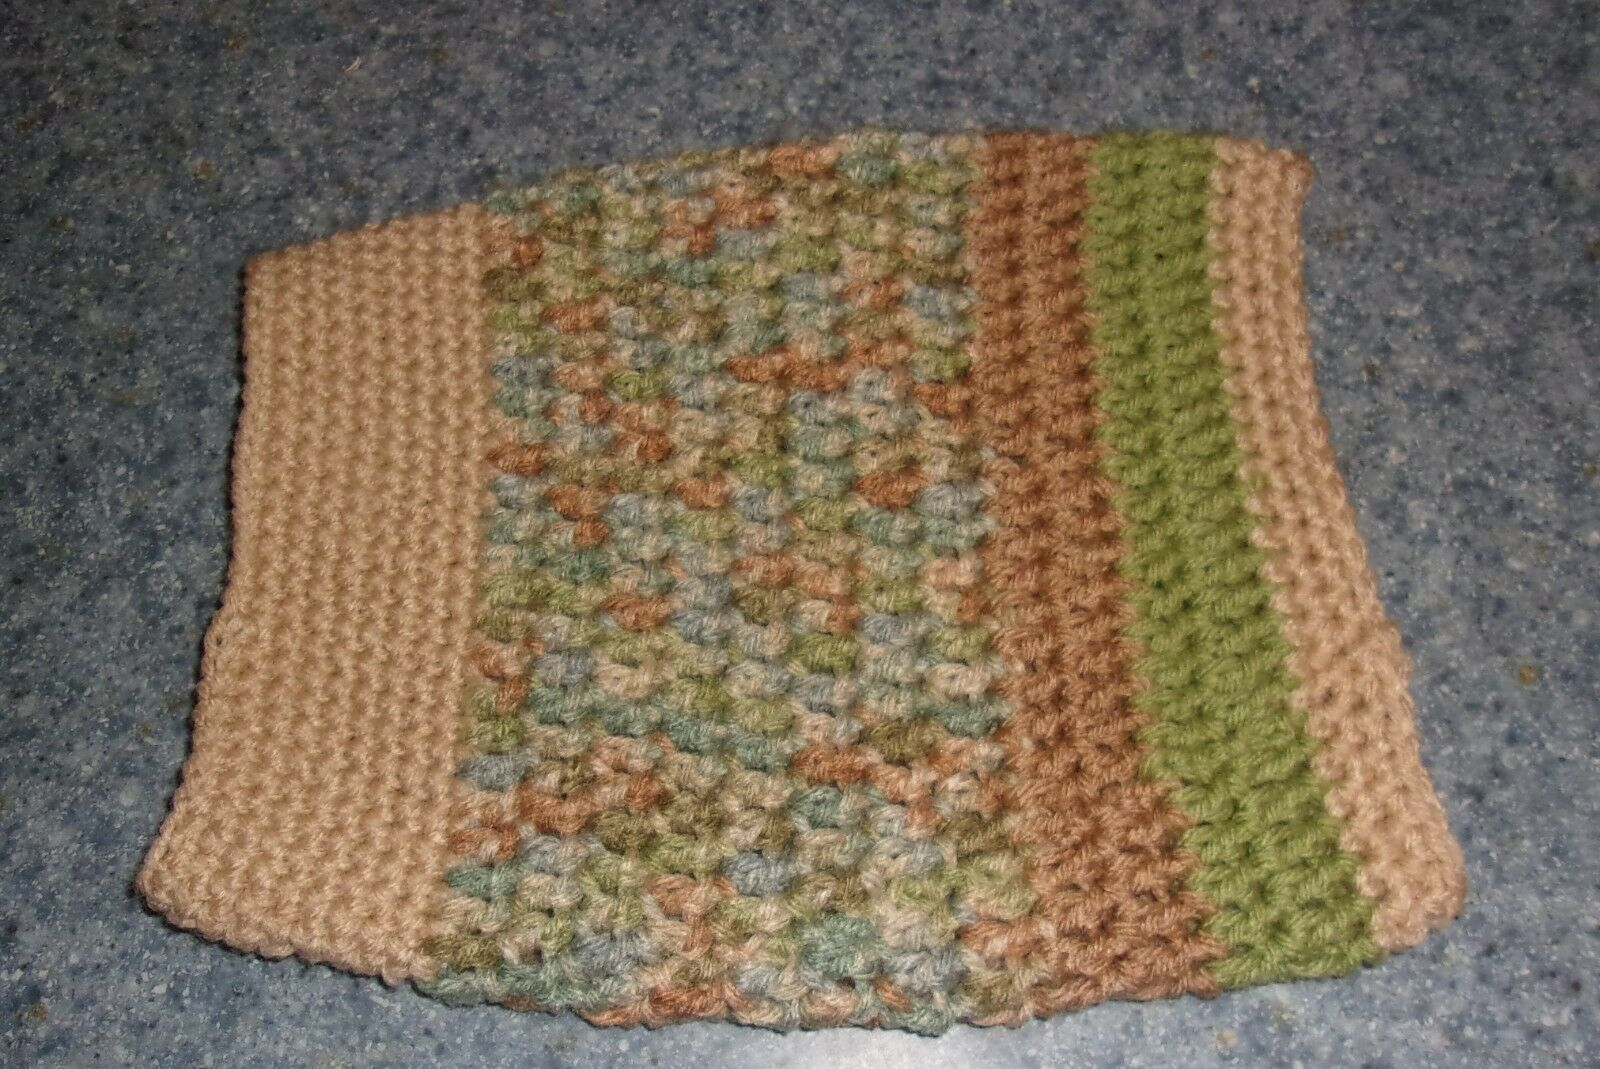 Brand New Hand Crocheted Tan Green Dog Snood Neck Warmer For Dog Rescue Charity